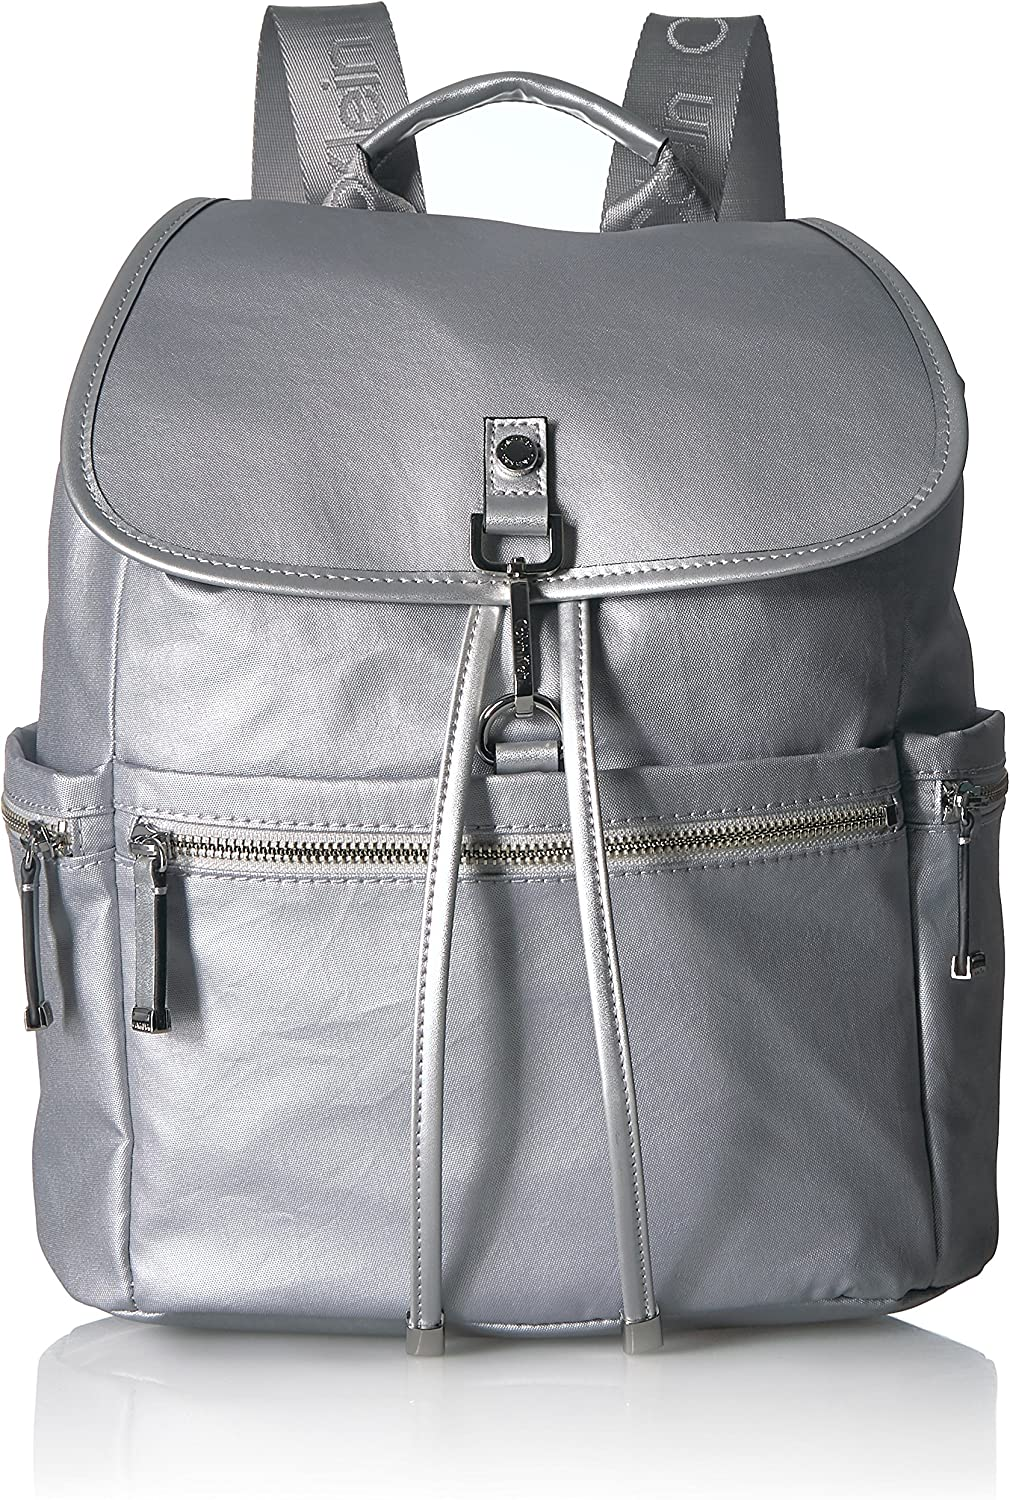 Calvin Klein Lianna Nylon Max 52% OFF famous Flap Over Backpack